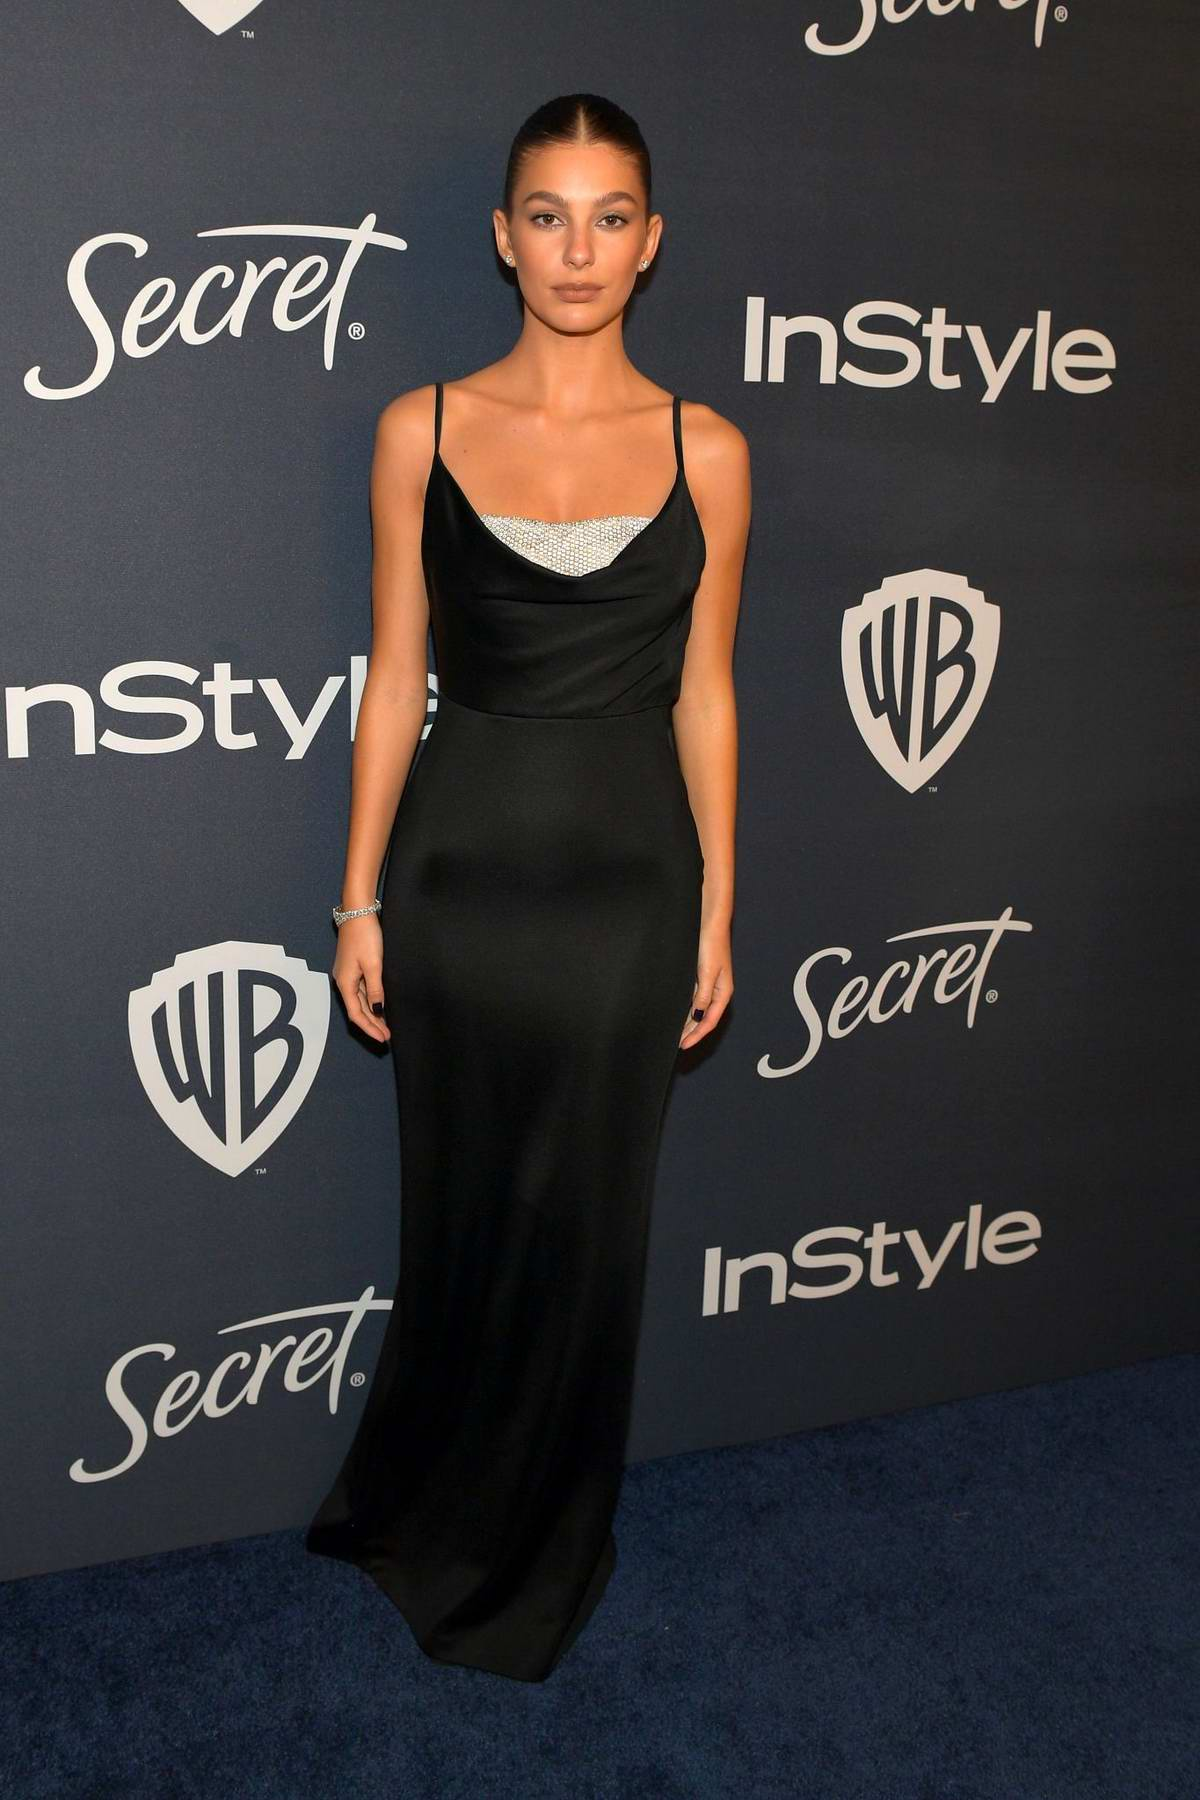 Camila Morrone attends the 21st annual Warner Bros and InStyle Golden Globe After-Party in Beverly Hills, California